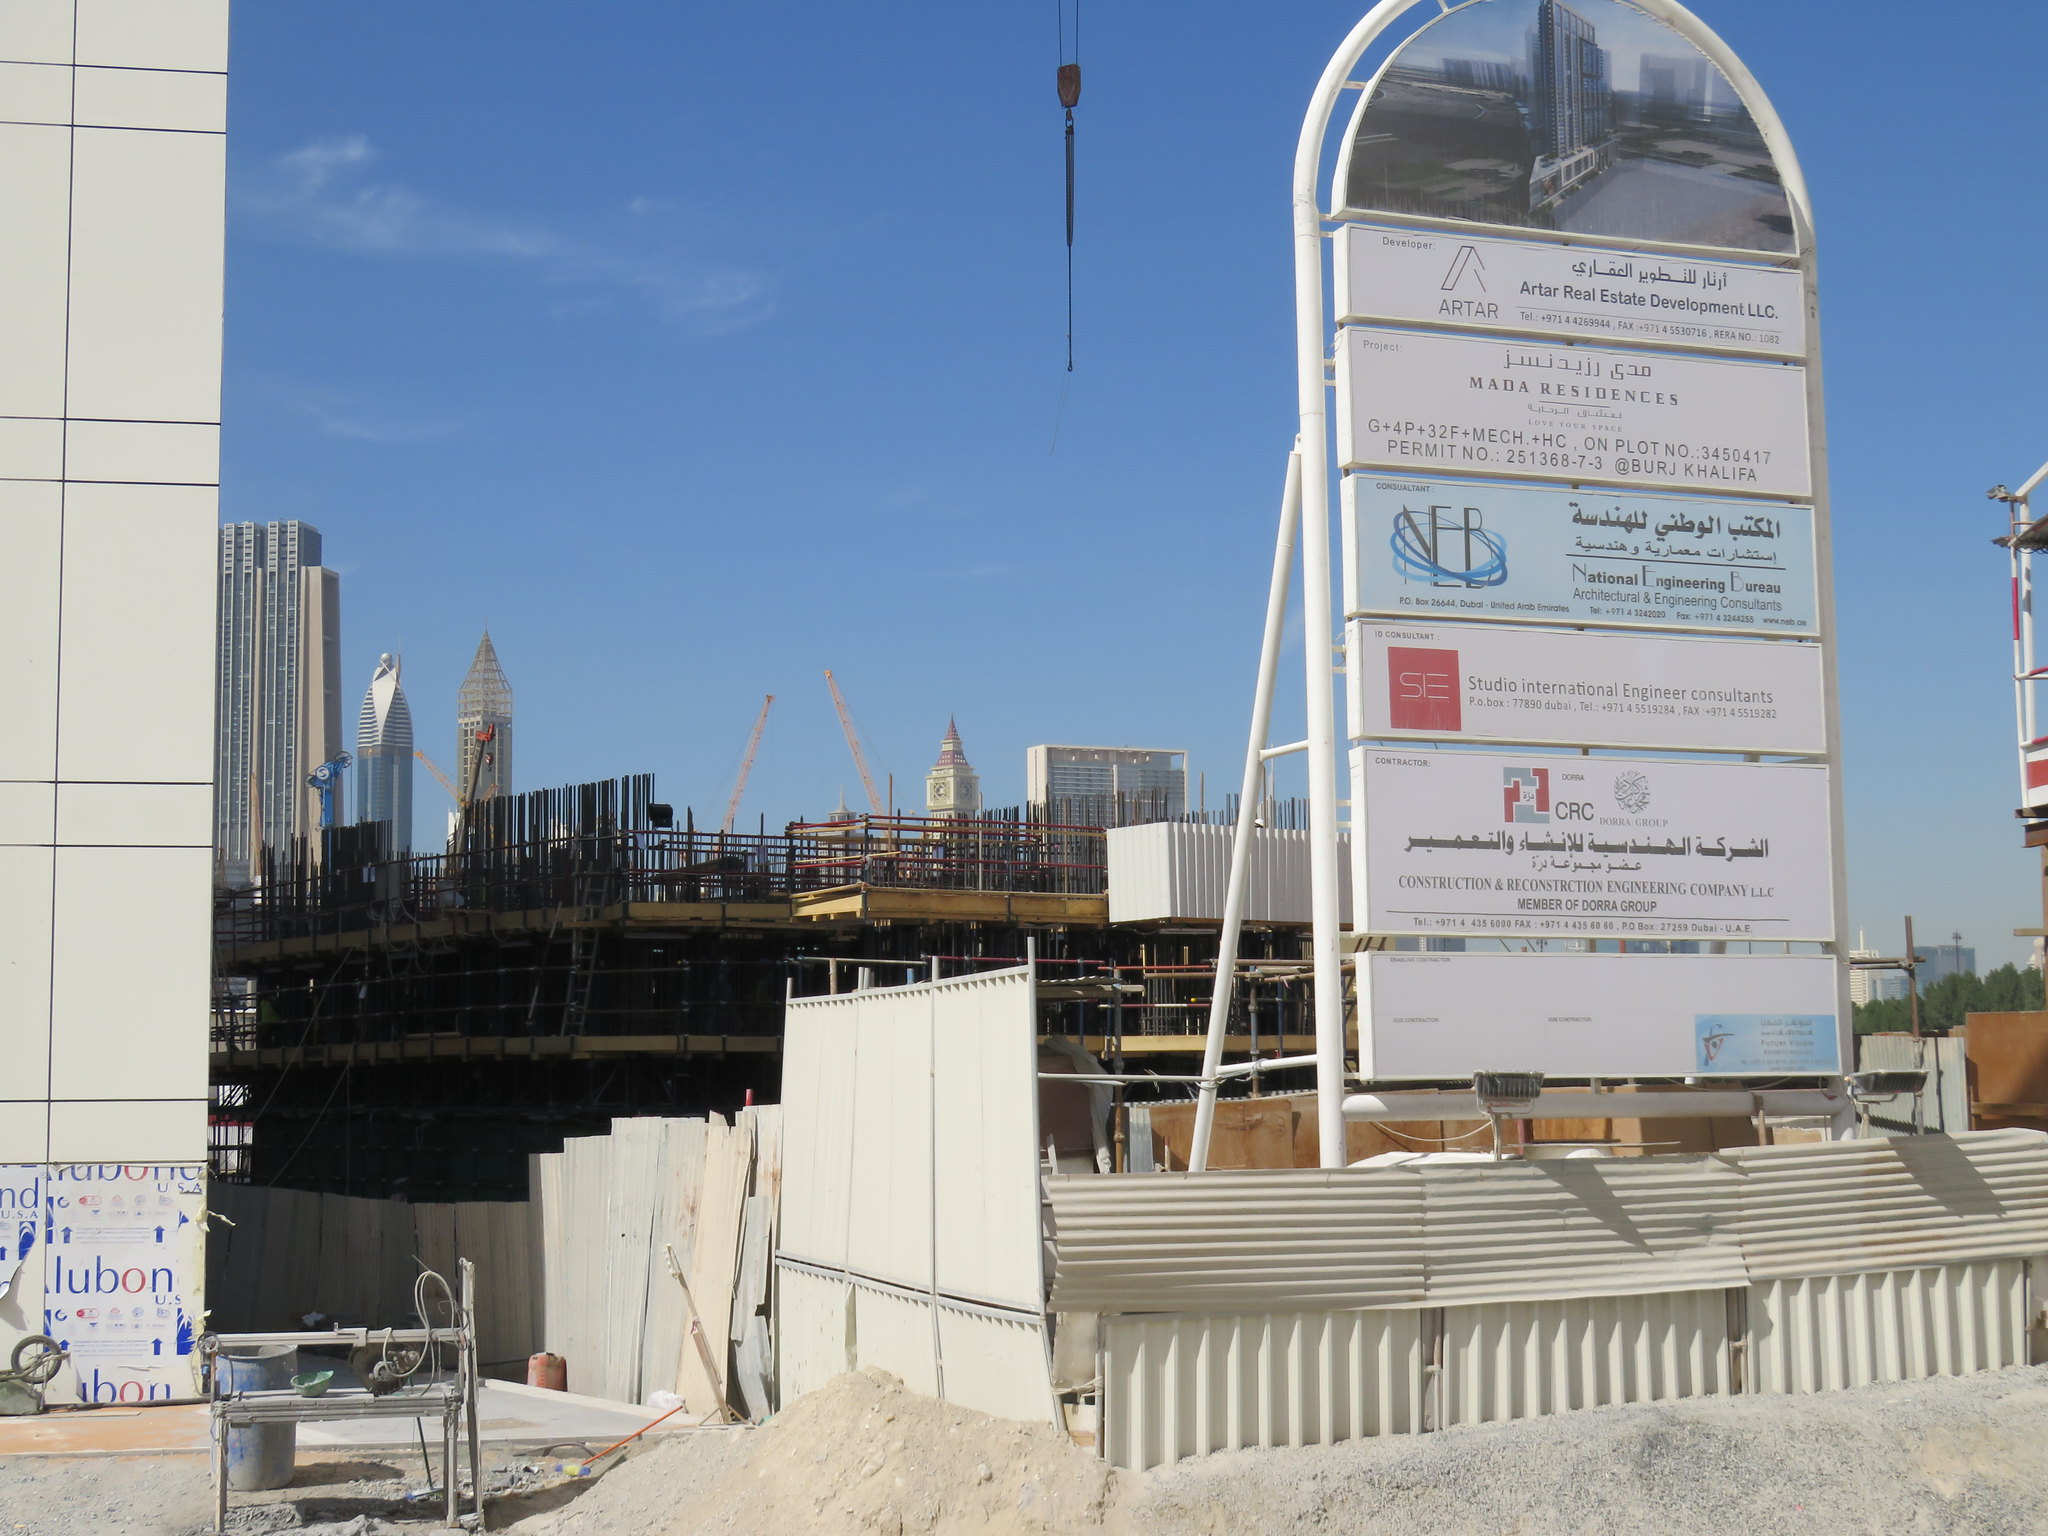 COMPLETED: MADA RESIDENCES, +100m, 41F, Res (DBD